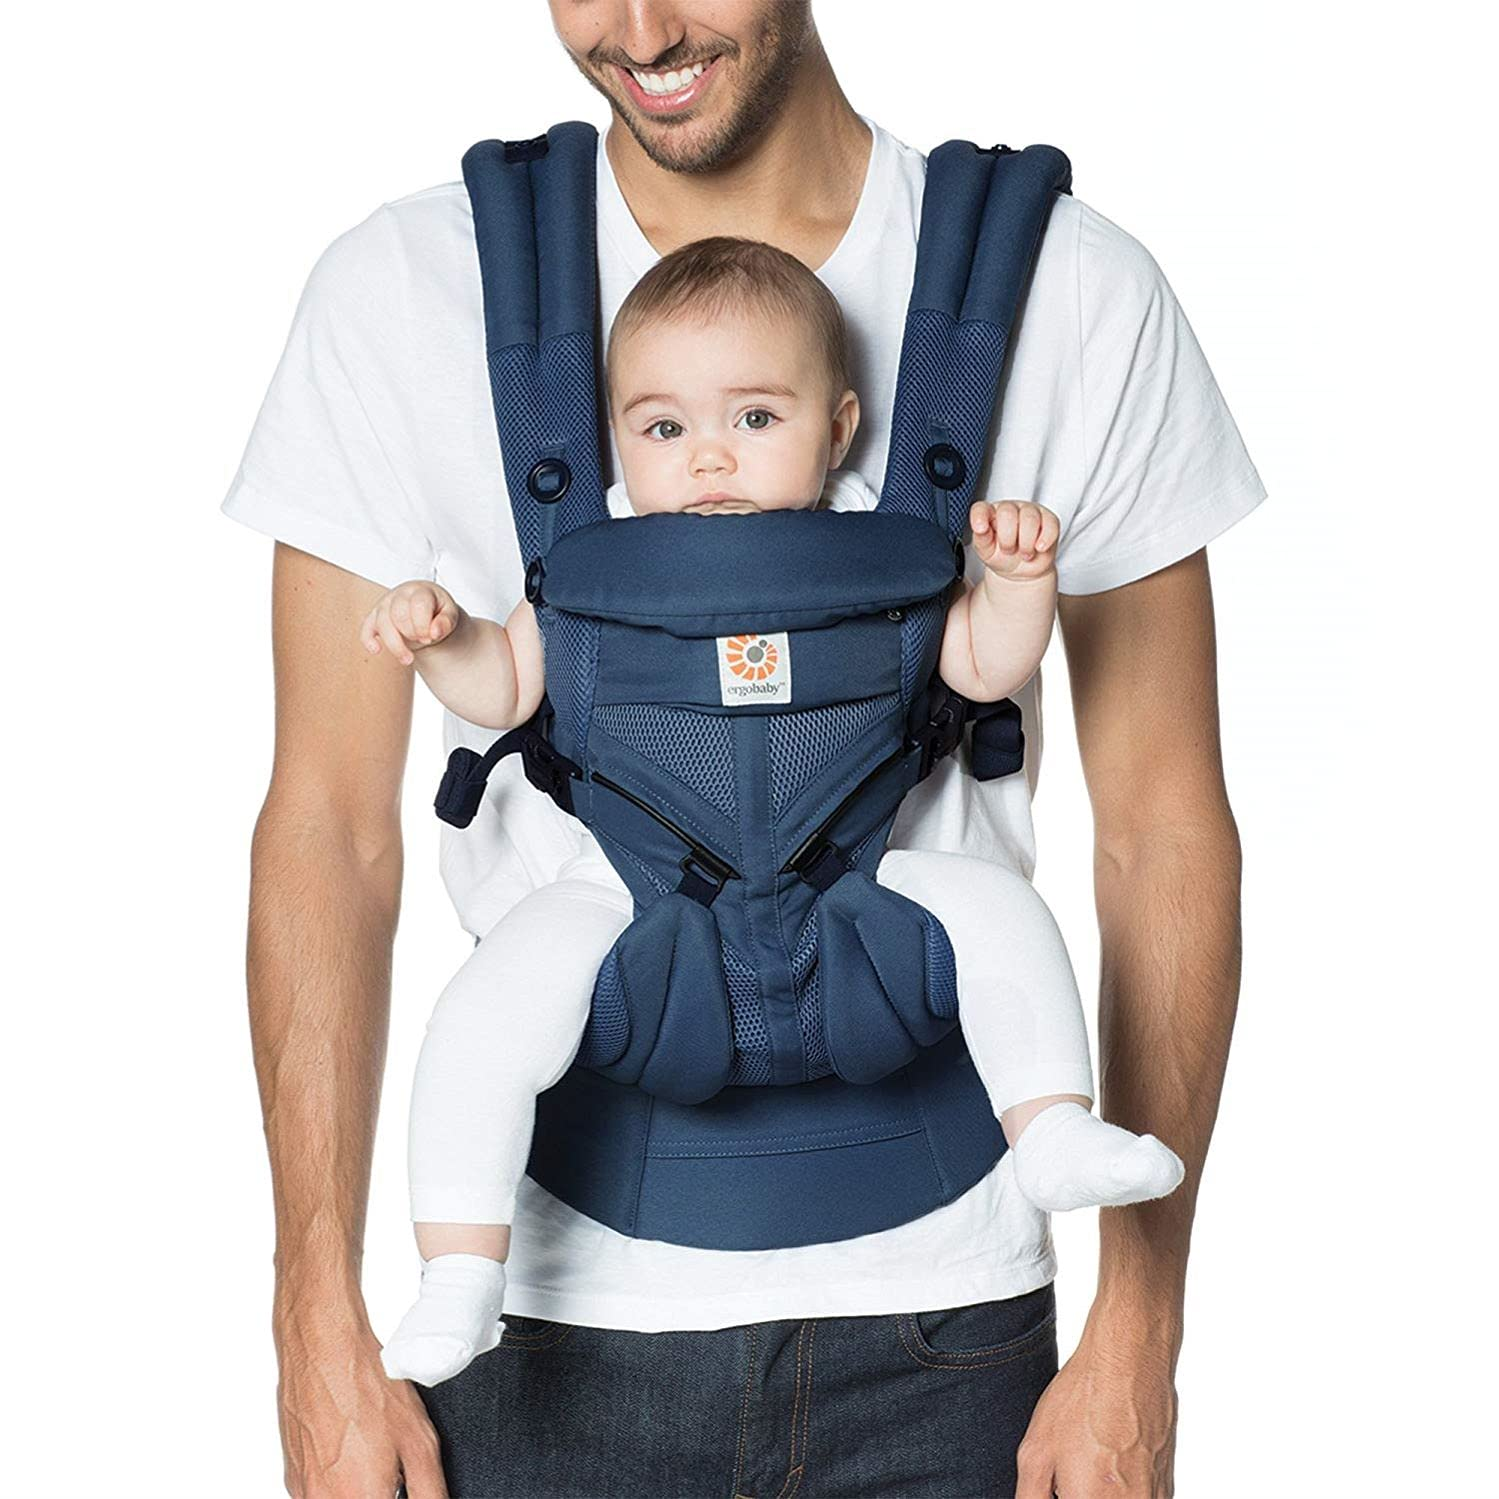 Ergobaby Omni 360 All-Position Baby Carrier for Newborn to Toddler with Lumbar Support & Cool Air Mesh (7-45 Lb), Midnight Blue